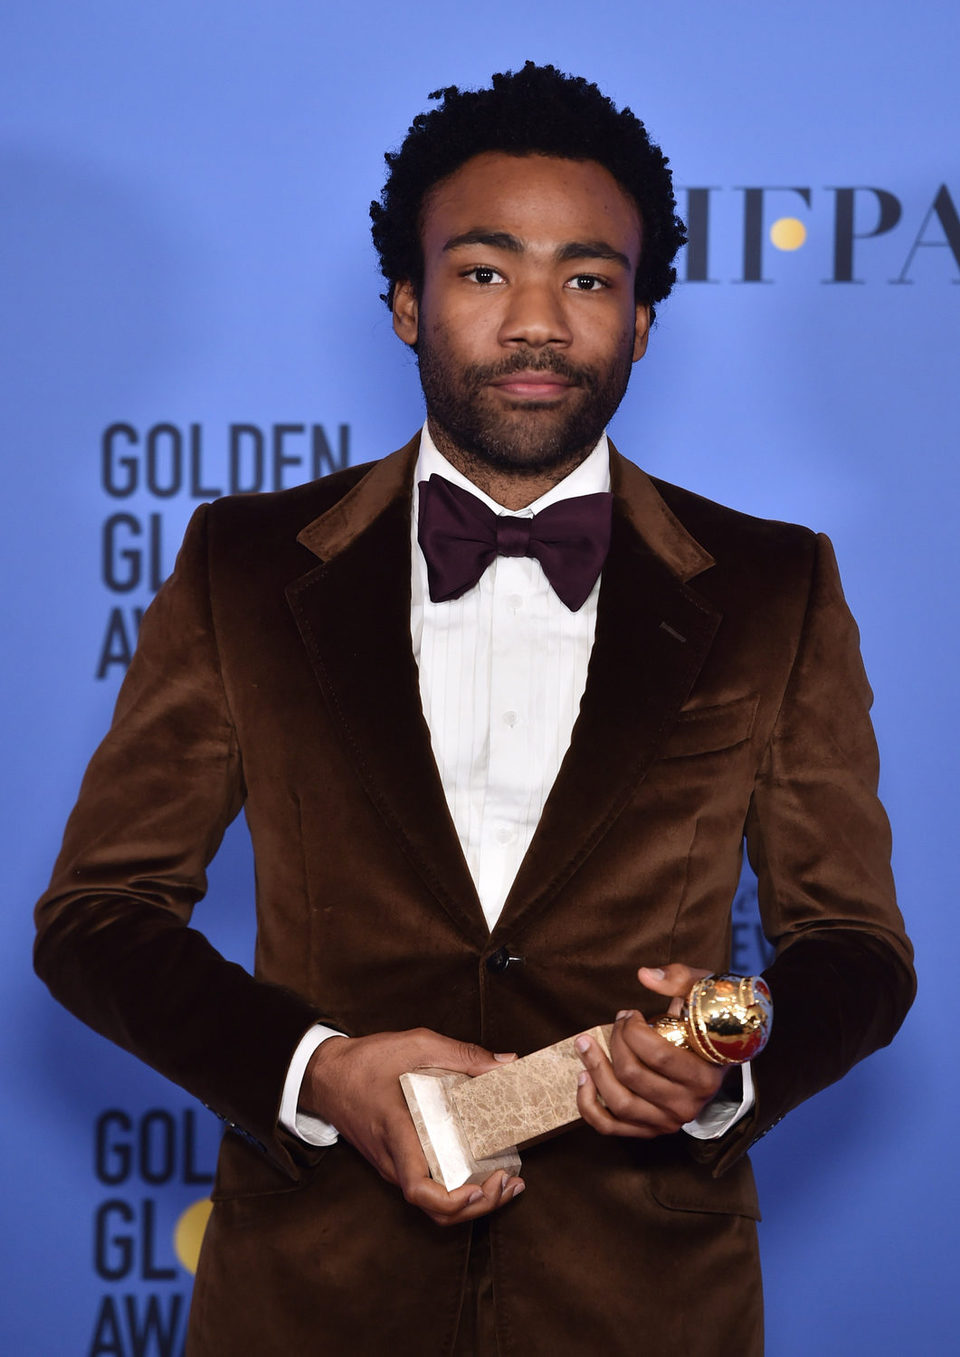 Donald Glover after the 2017 Golden Globes show